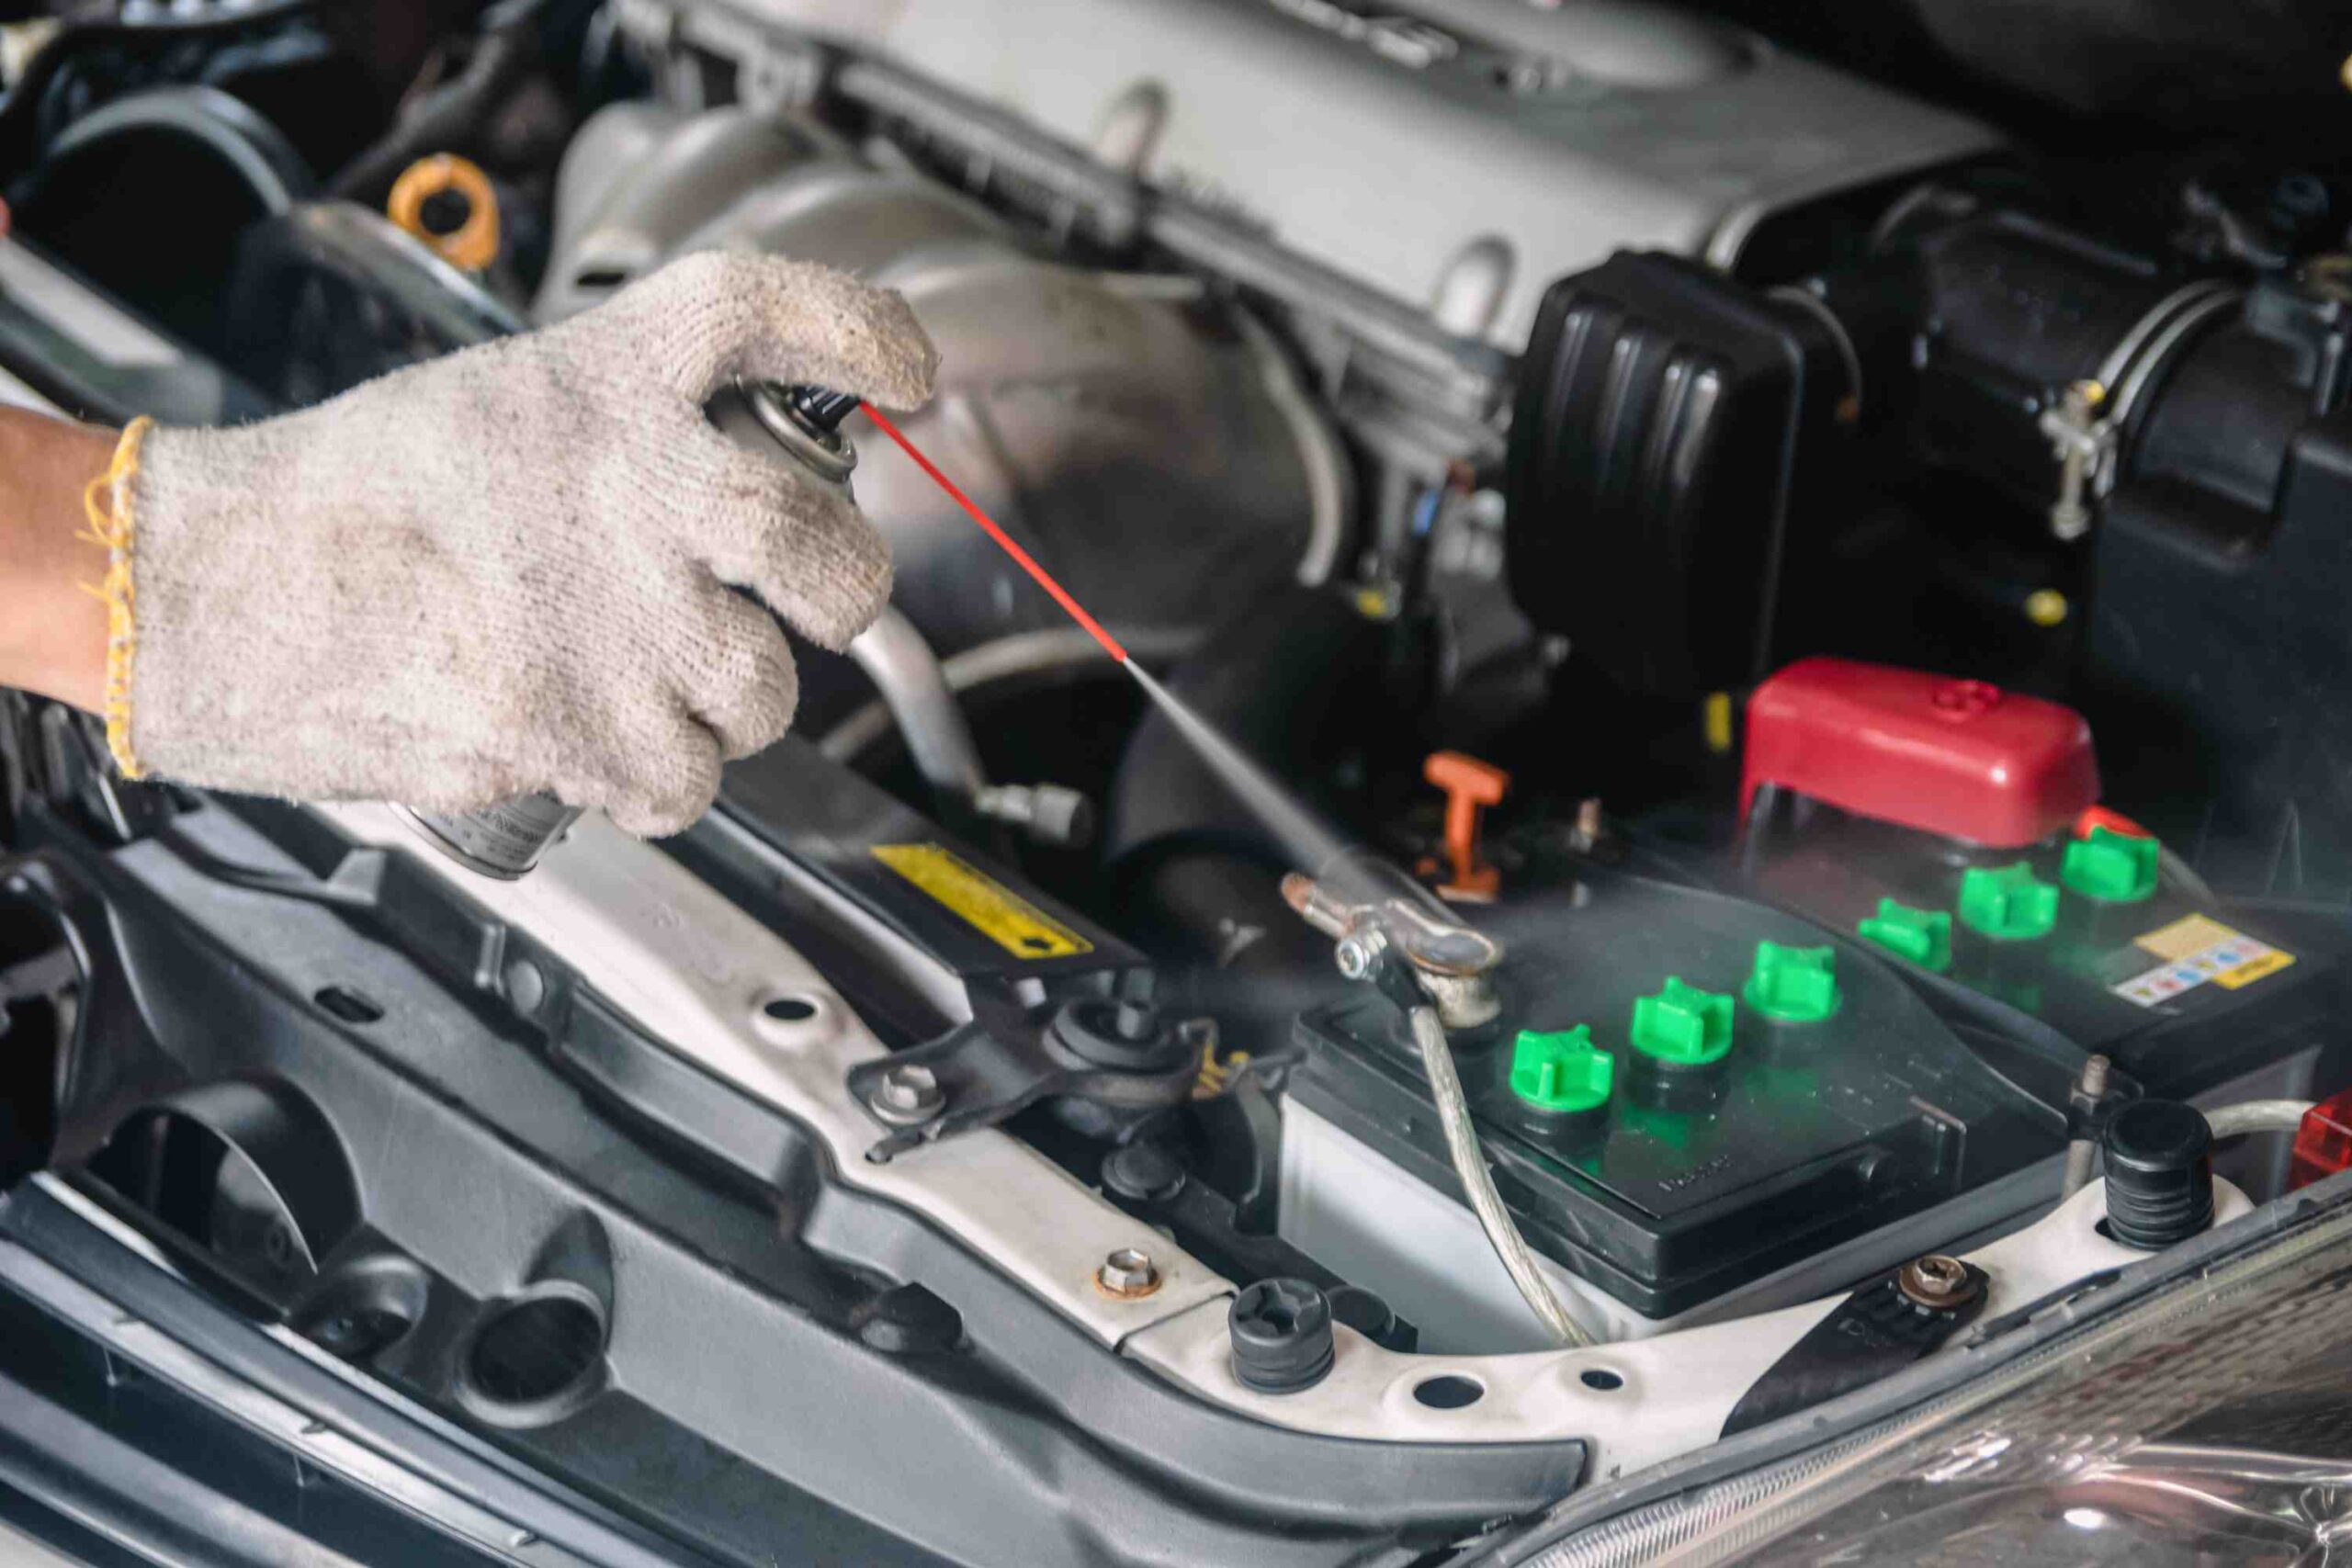 Cleaning car battery with spray